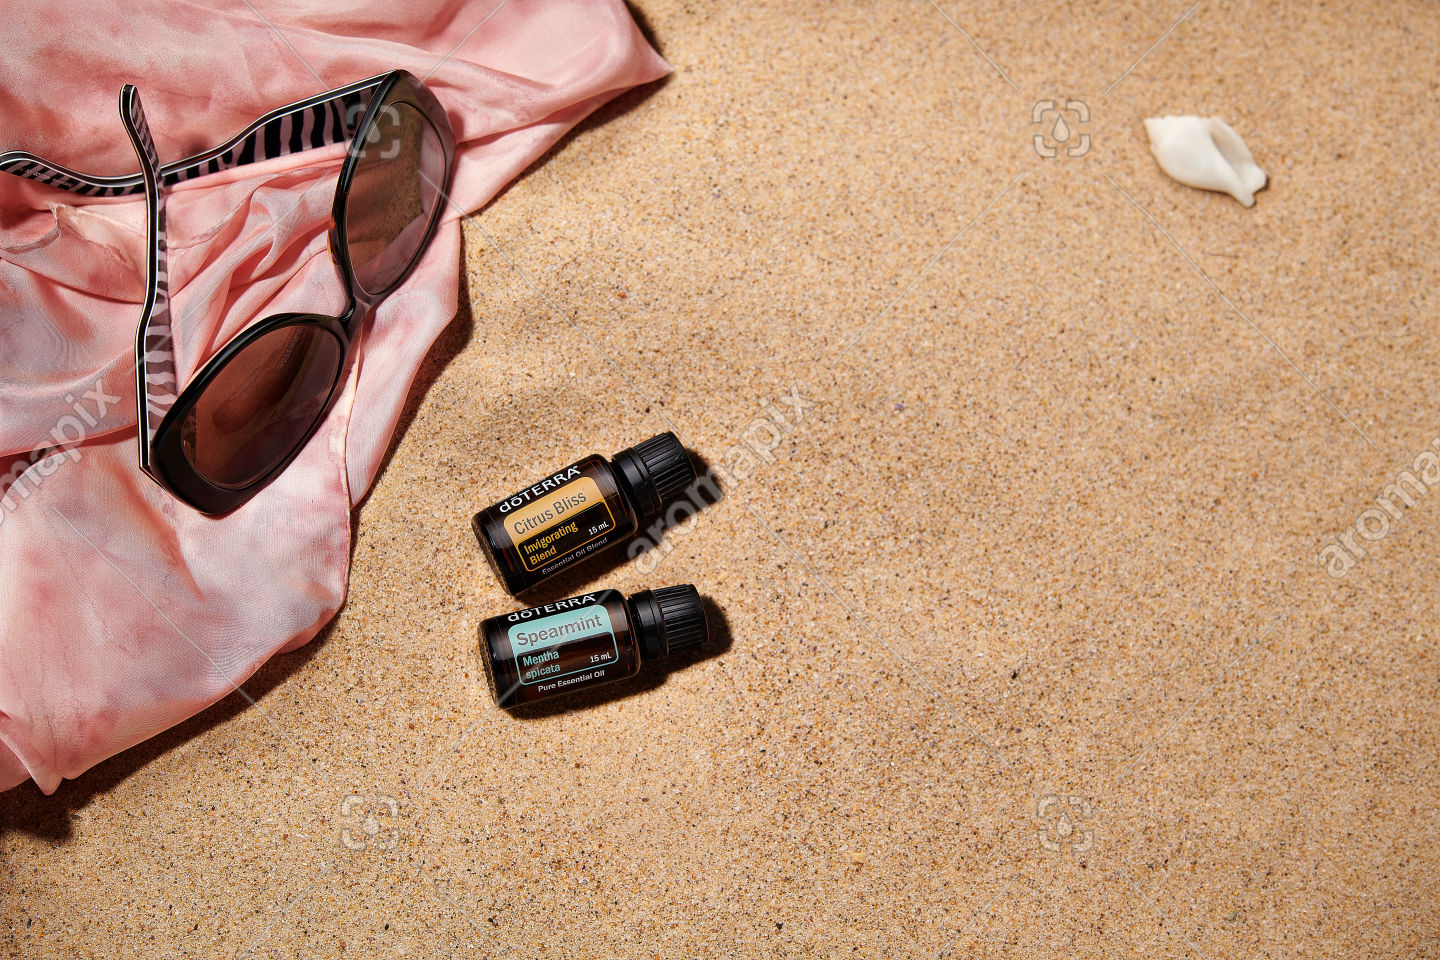 doTERRA Citrus Bliss and Spearmint with accessories on sand